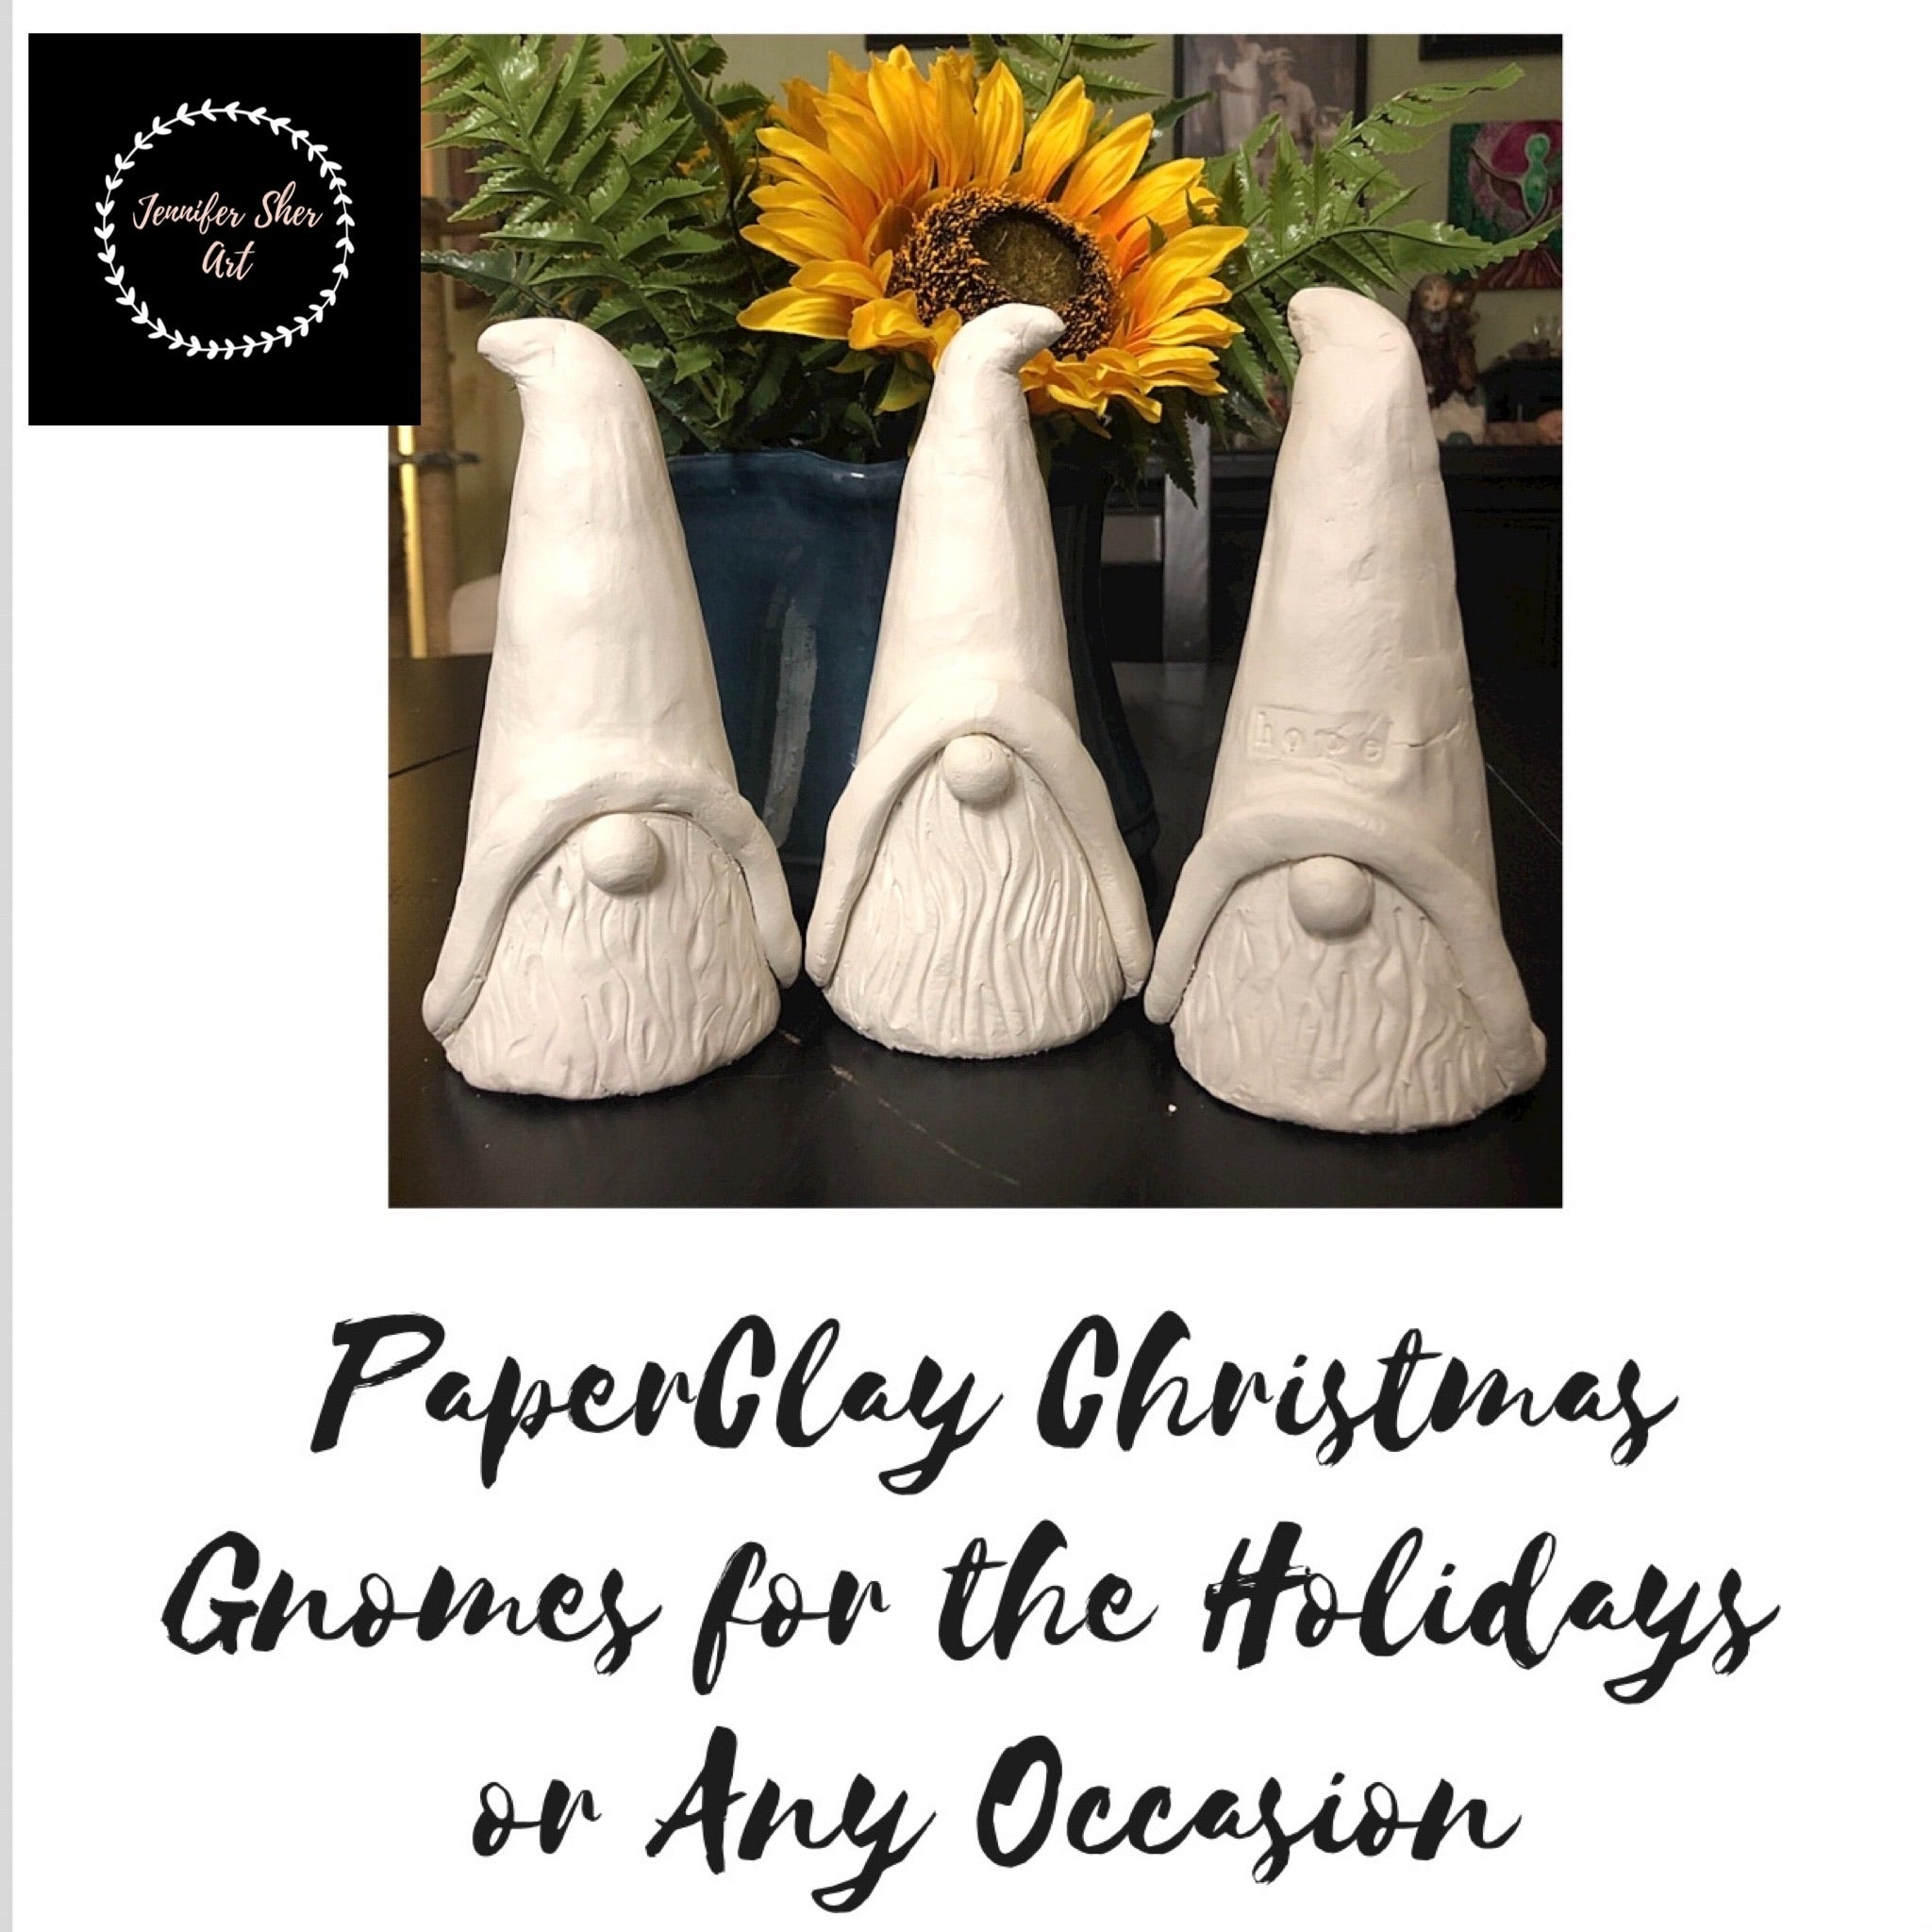 FREE - Make Your Own Paperclay Gnomes for the Holidays or Any Occasion - Jennifer Sher Art